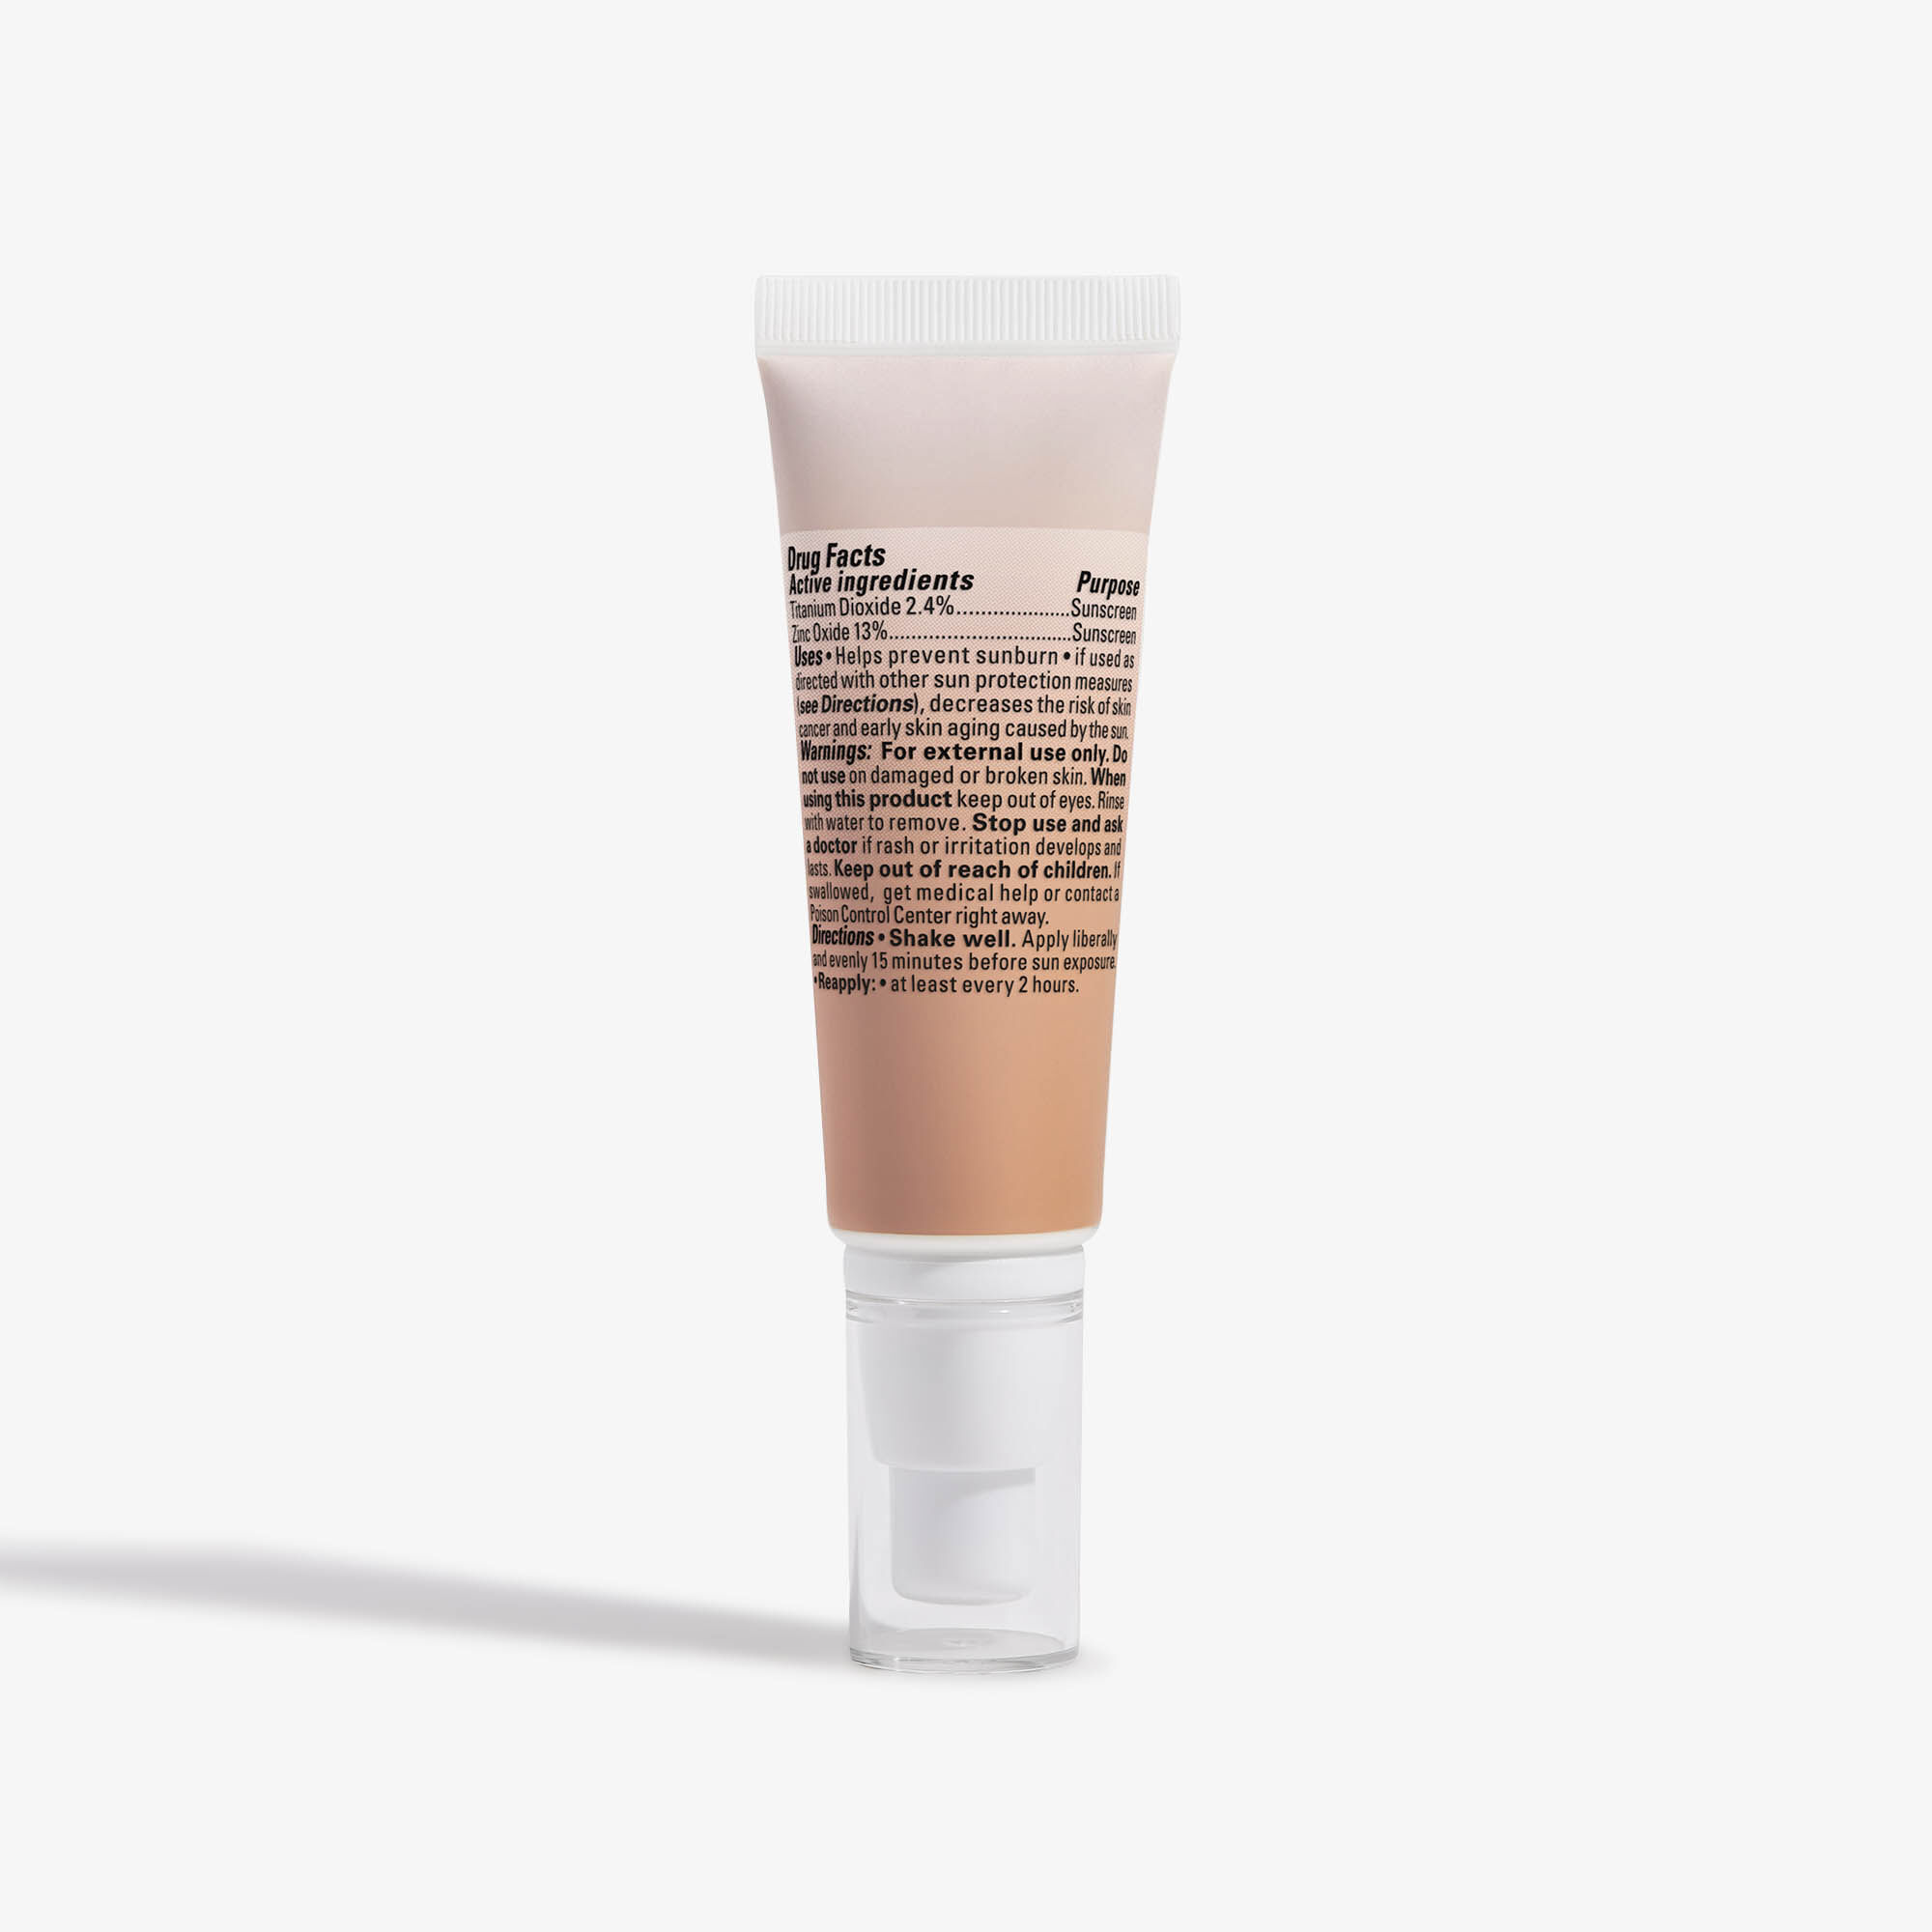 CCC Clean Corrective With Vitamin C Tinted Moisturizer, Light